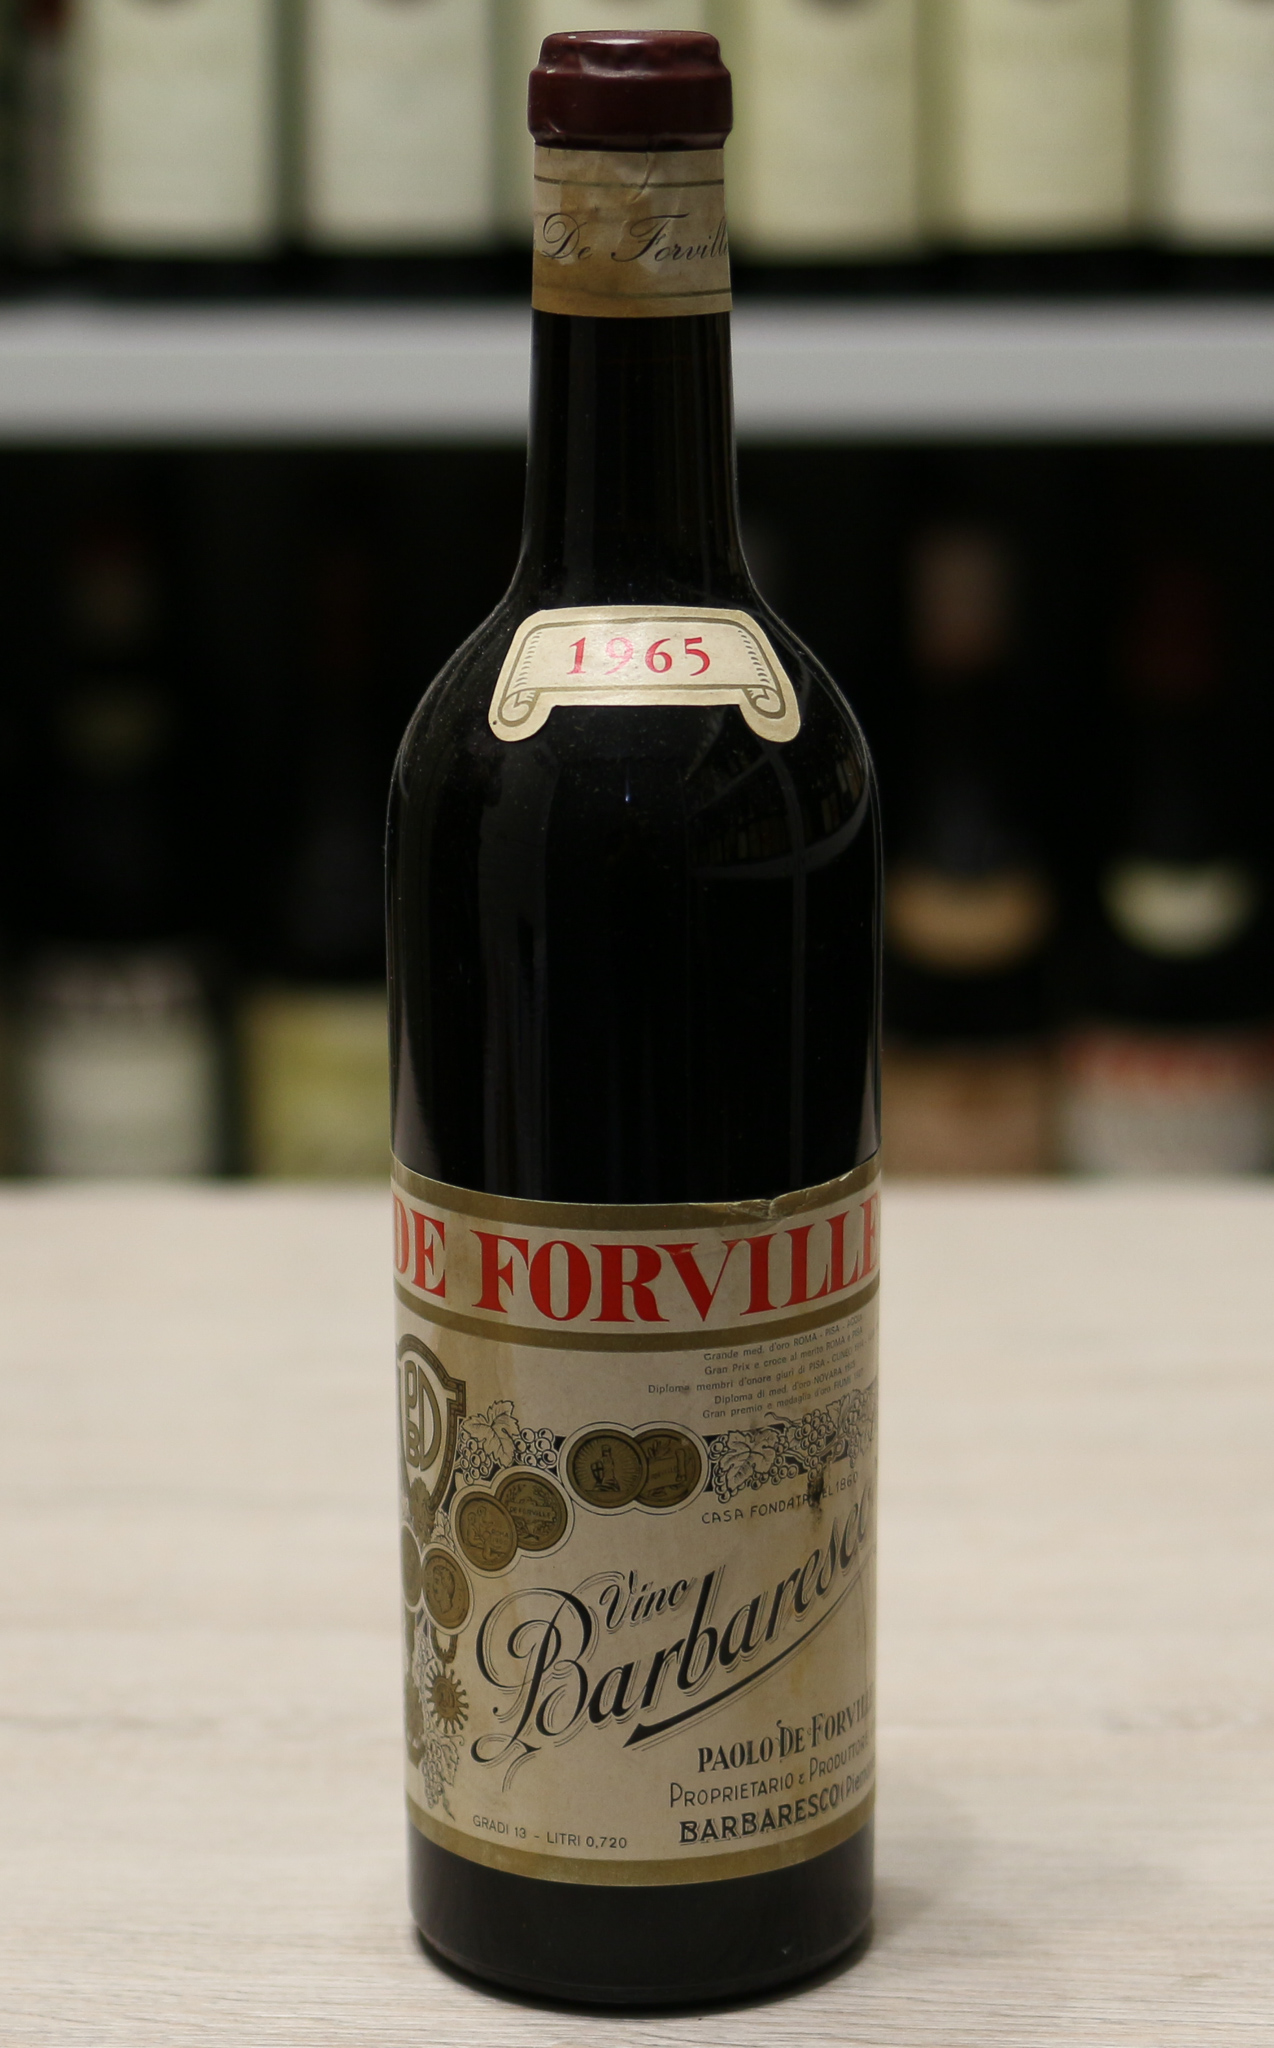 Вино Barbaresco De Forville 1955 года урожая